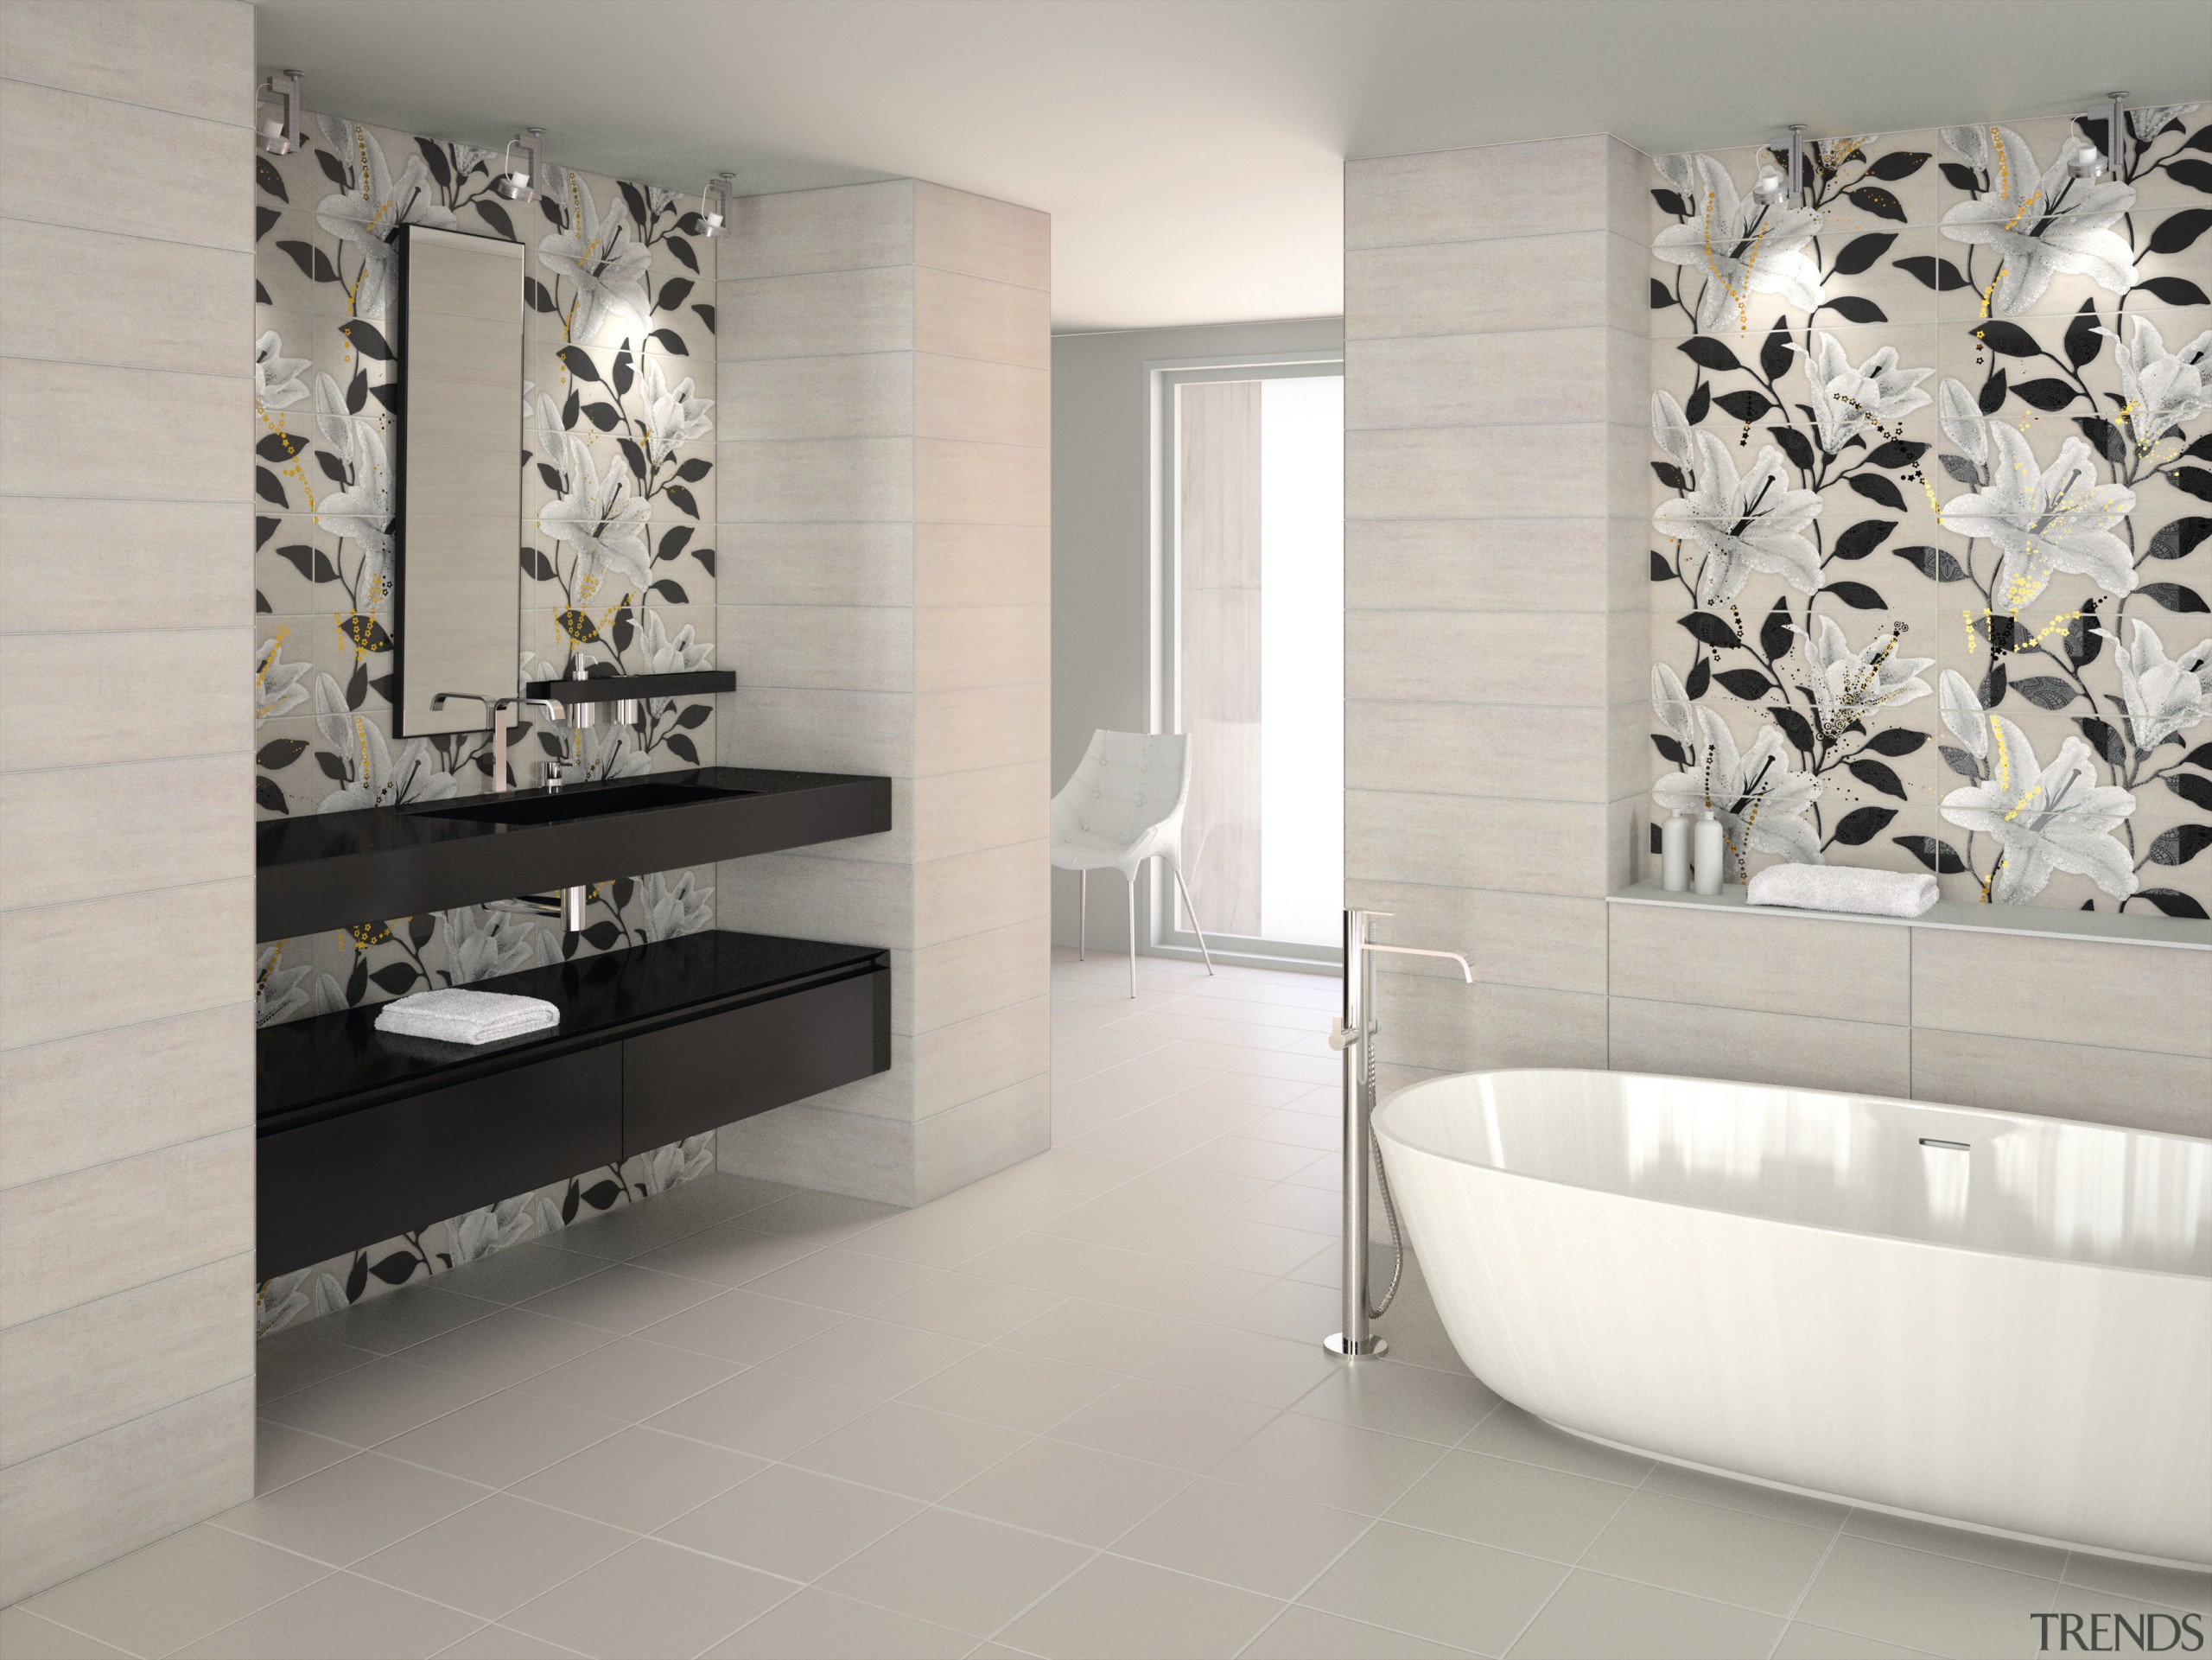 Tile Trends imports tiles from all corners of bathroom, ceramic, floor, flooring, interior design, product design, room, tap, tile, wall, gray